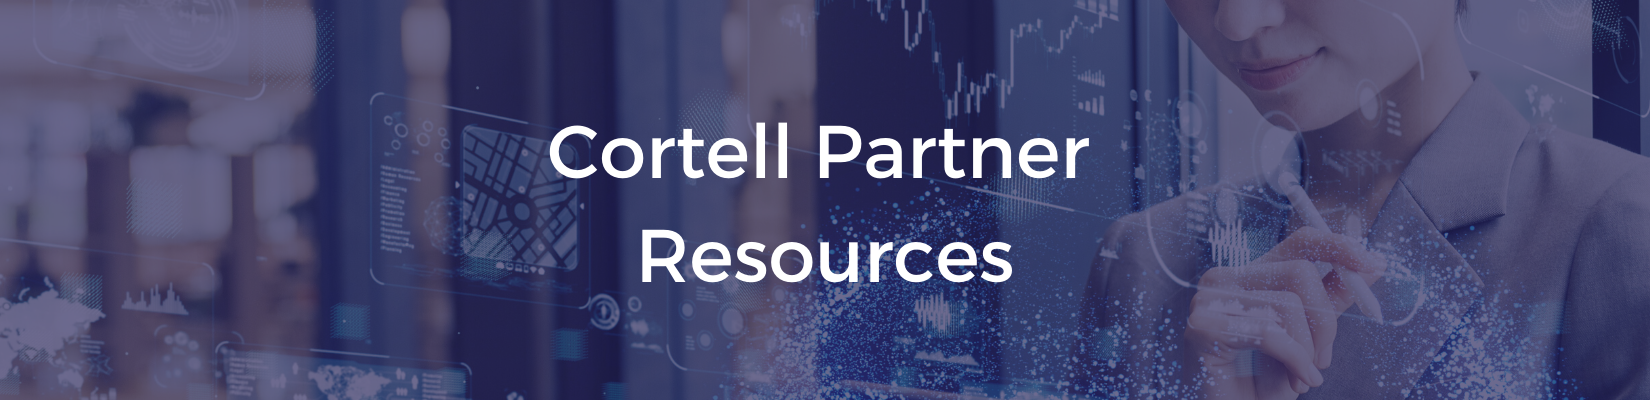 Cortell Partner Resources